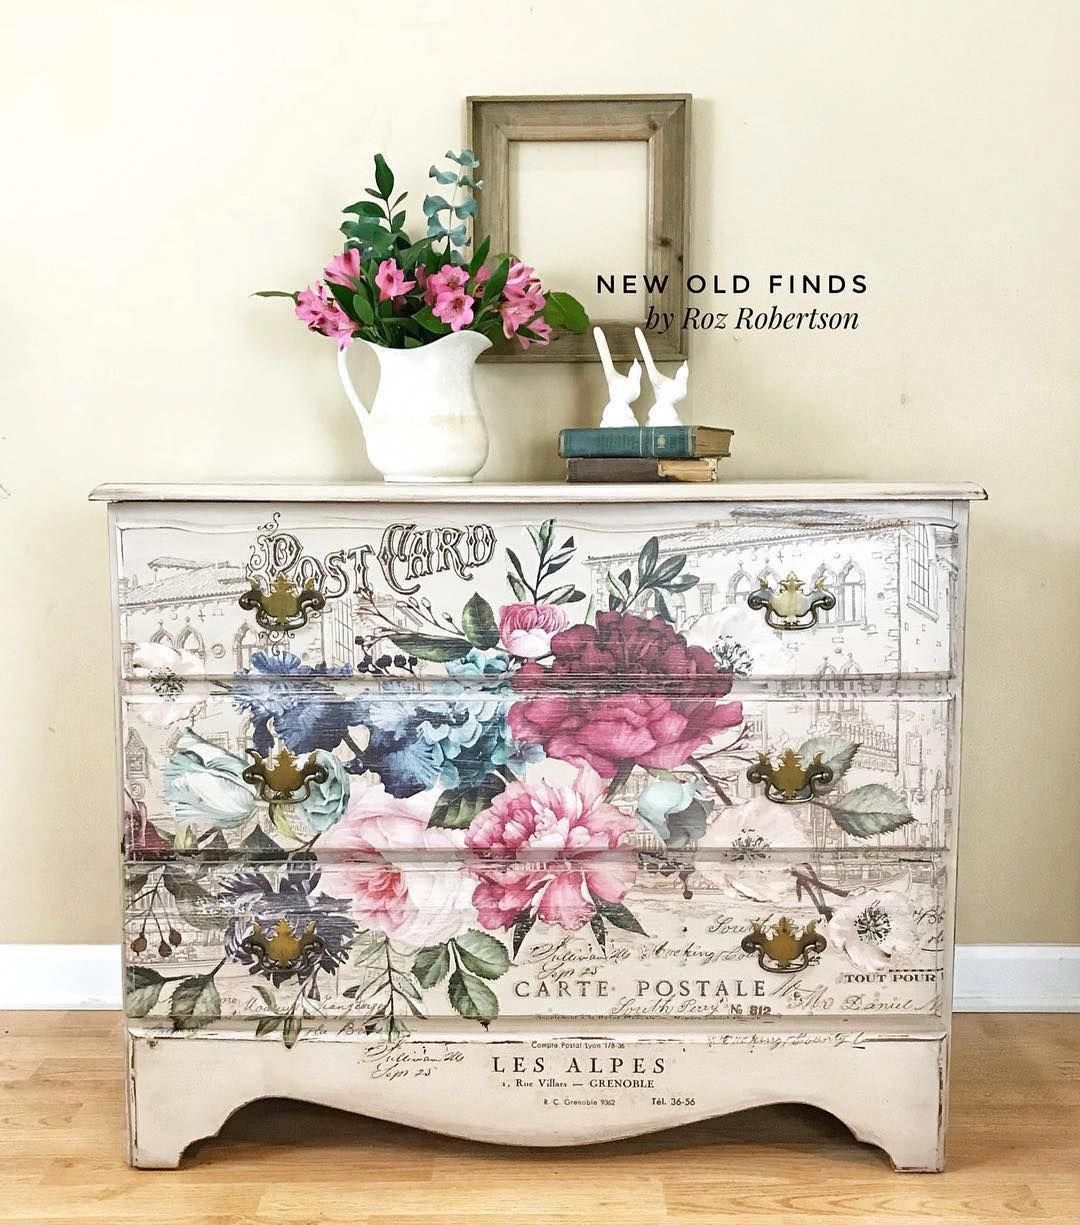 Roz Robertson of @newoldfinds used our new [re]design transfer Imperial Garden on this beautiful dresser. She shows it off perfectly. New transfers are shipping to retailers first week in September. See Roz's page for more gorgeous creations using the new transfers and more! ������#redesigntransfers #homedecor #diy #diyhomedecor #furniture #furnitureartist #upclcyed #diyfurniturebench